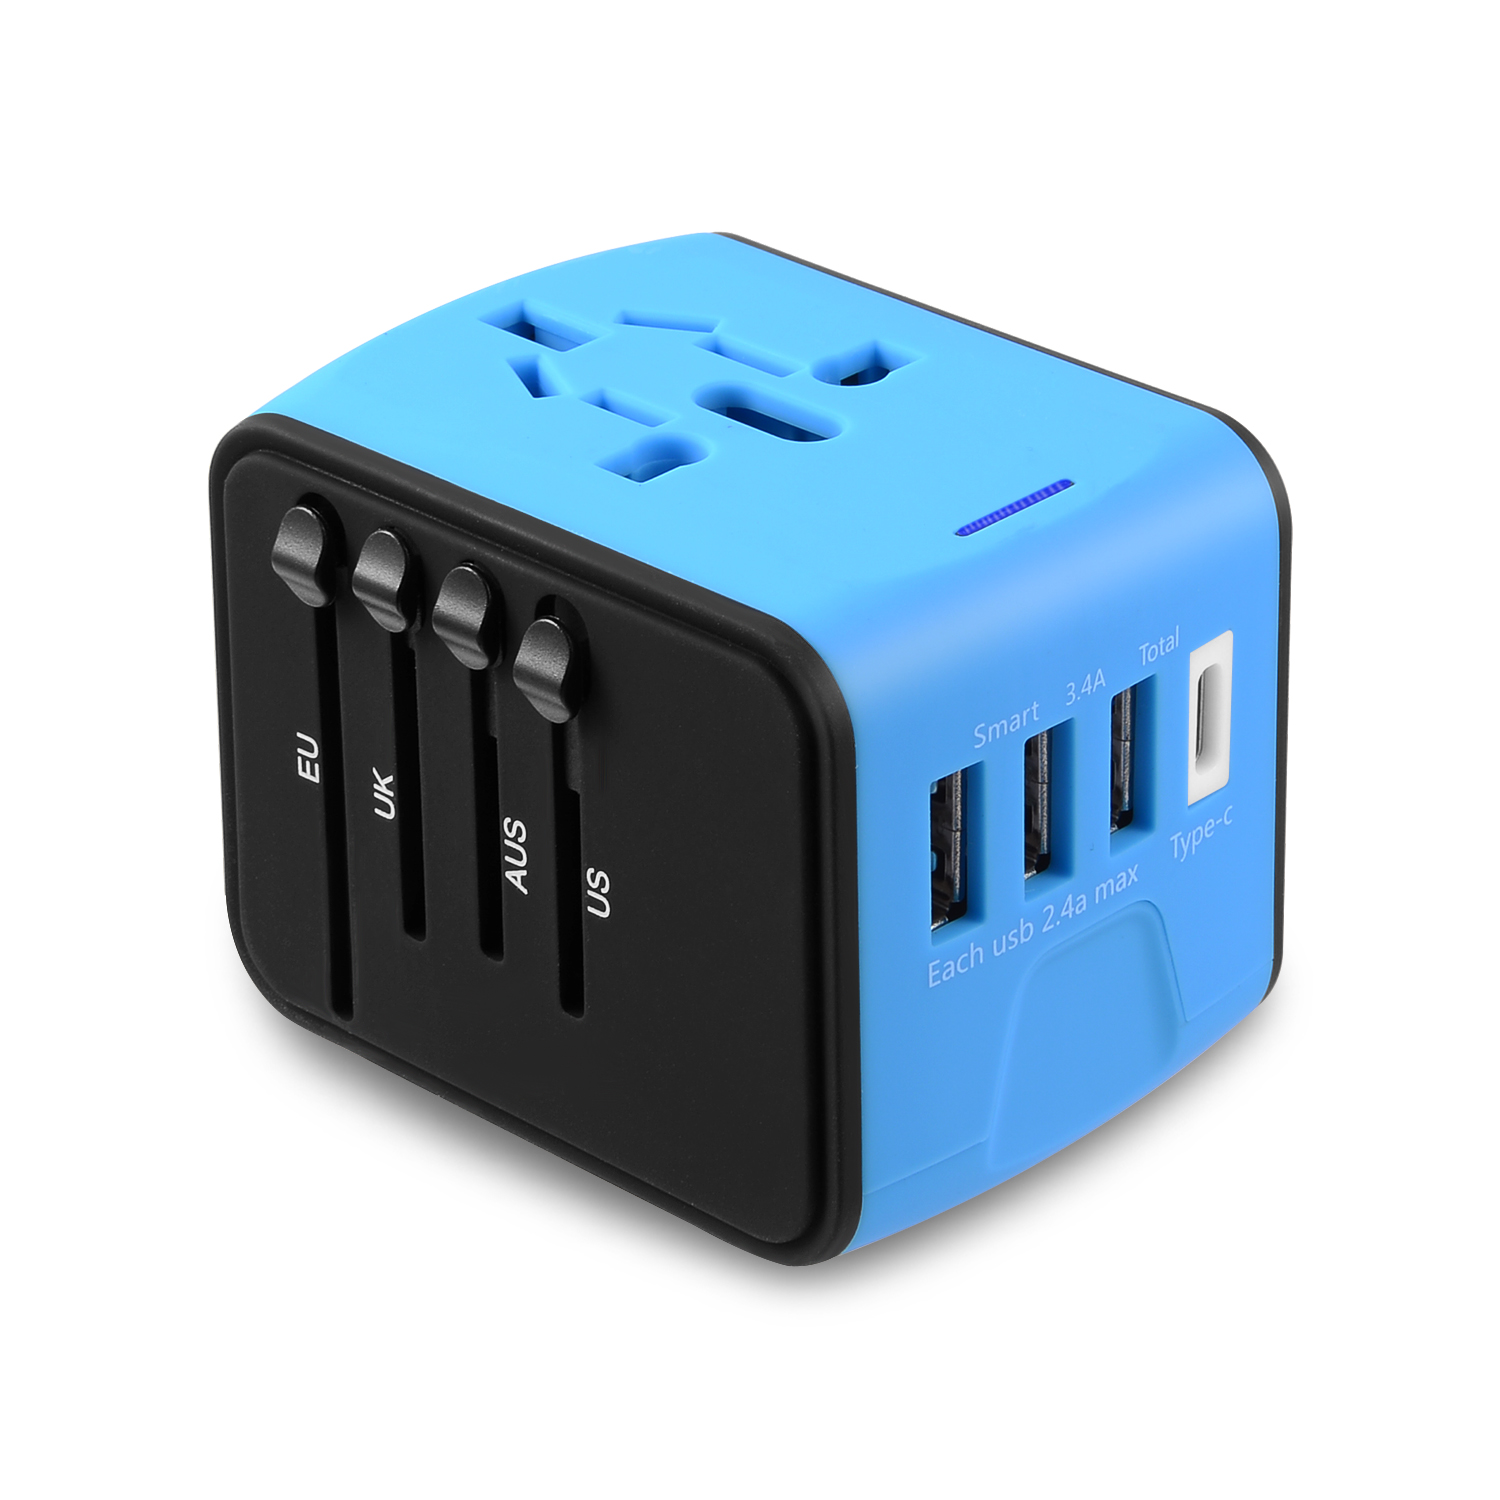 Universal Travel Adapter Type C 4 USB International Power Plug Converter Wall Charger for UK European EU AU US for 200 Countries